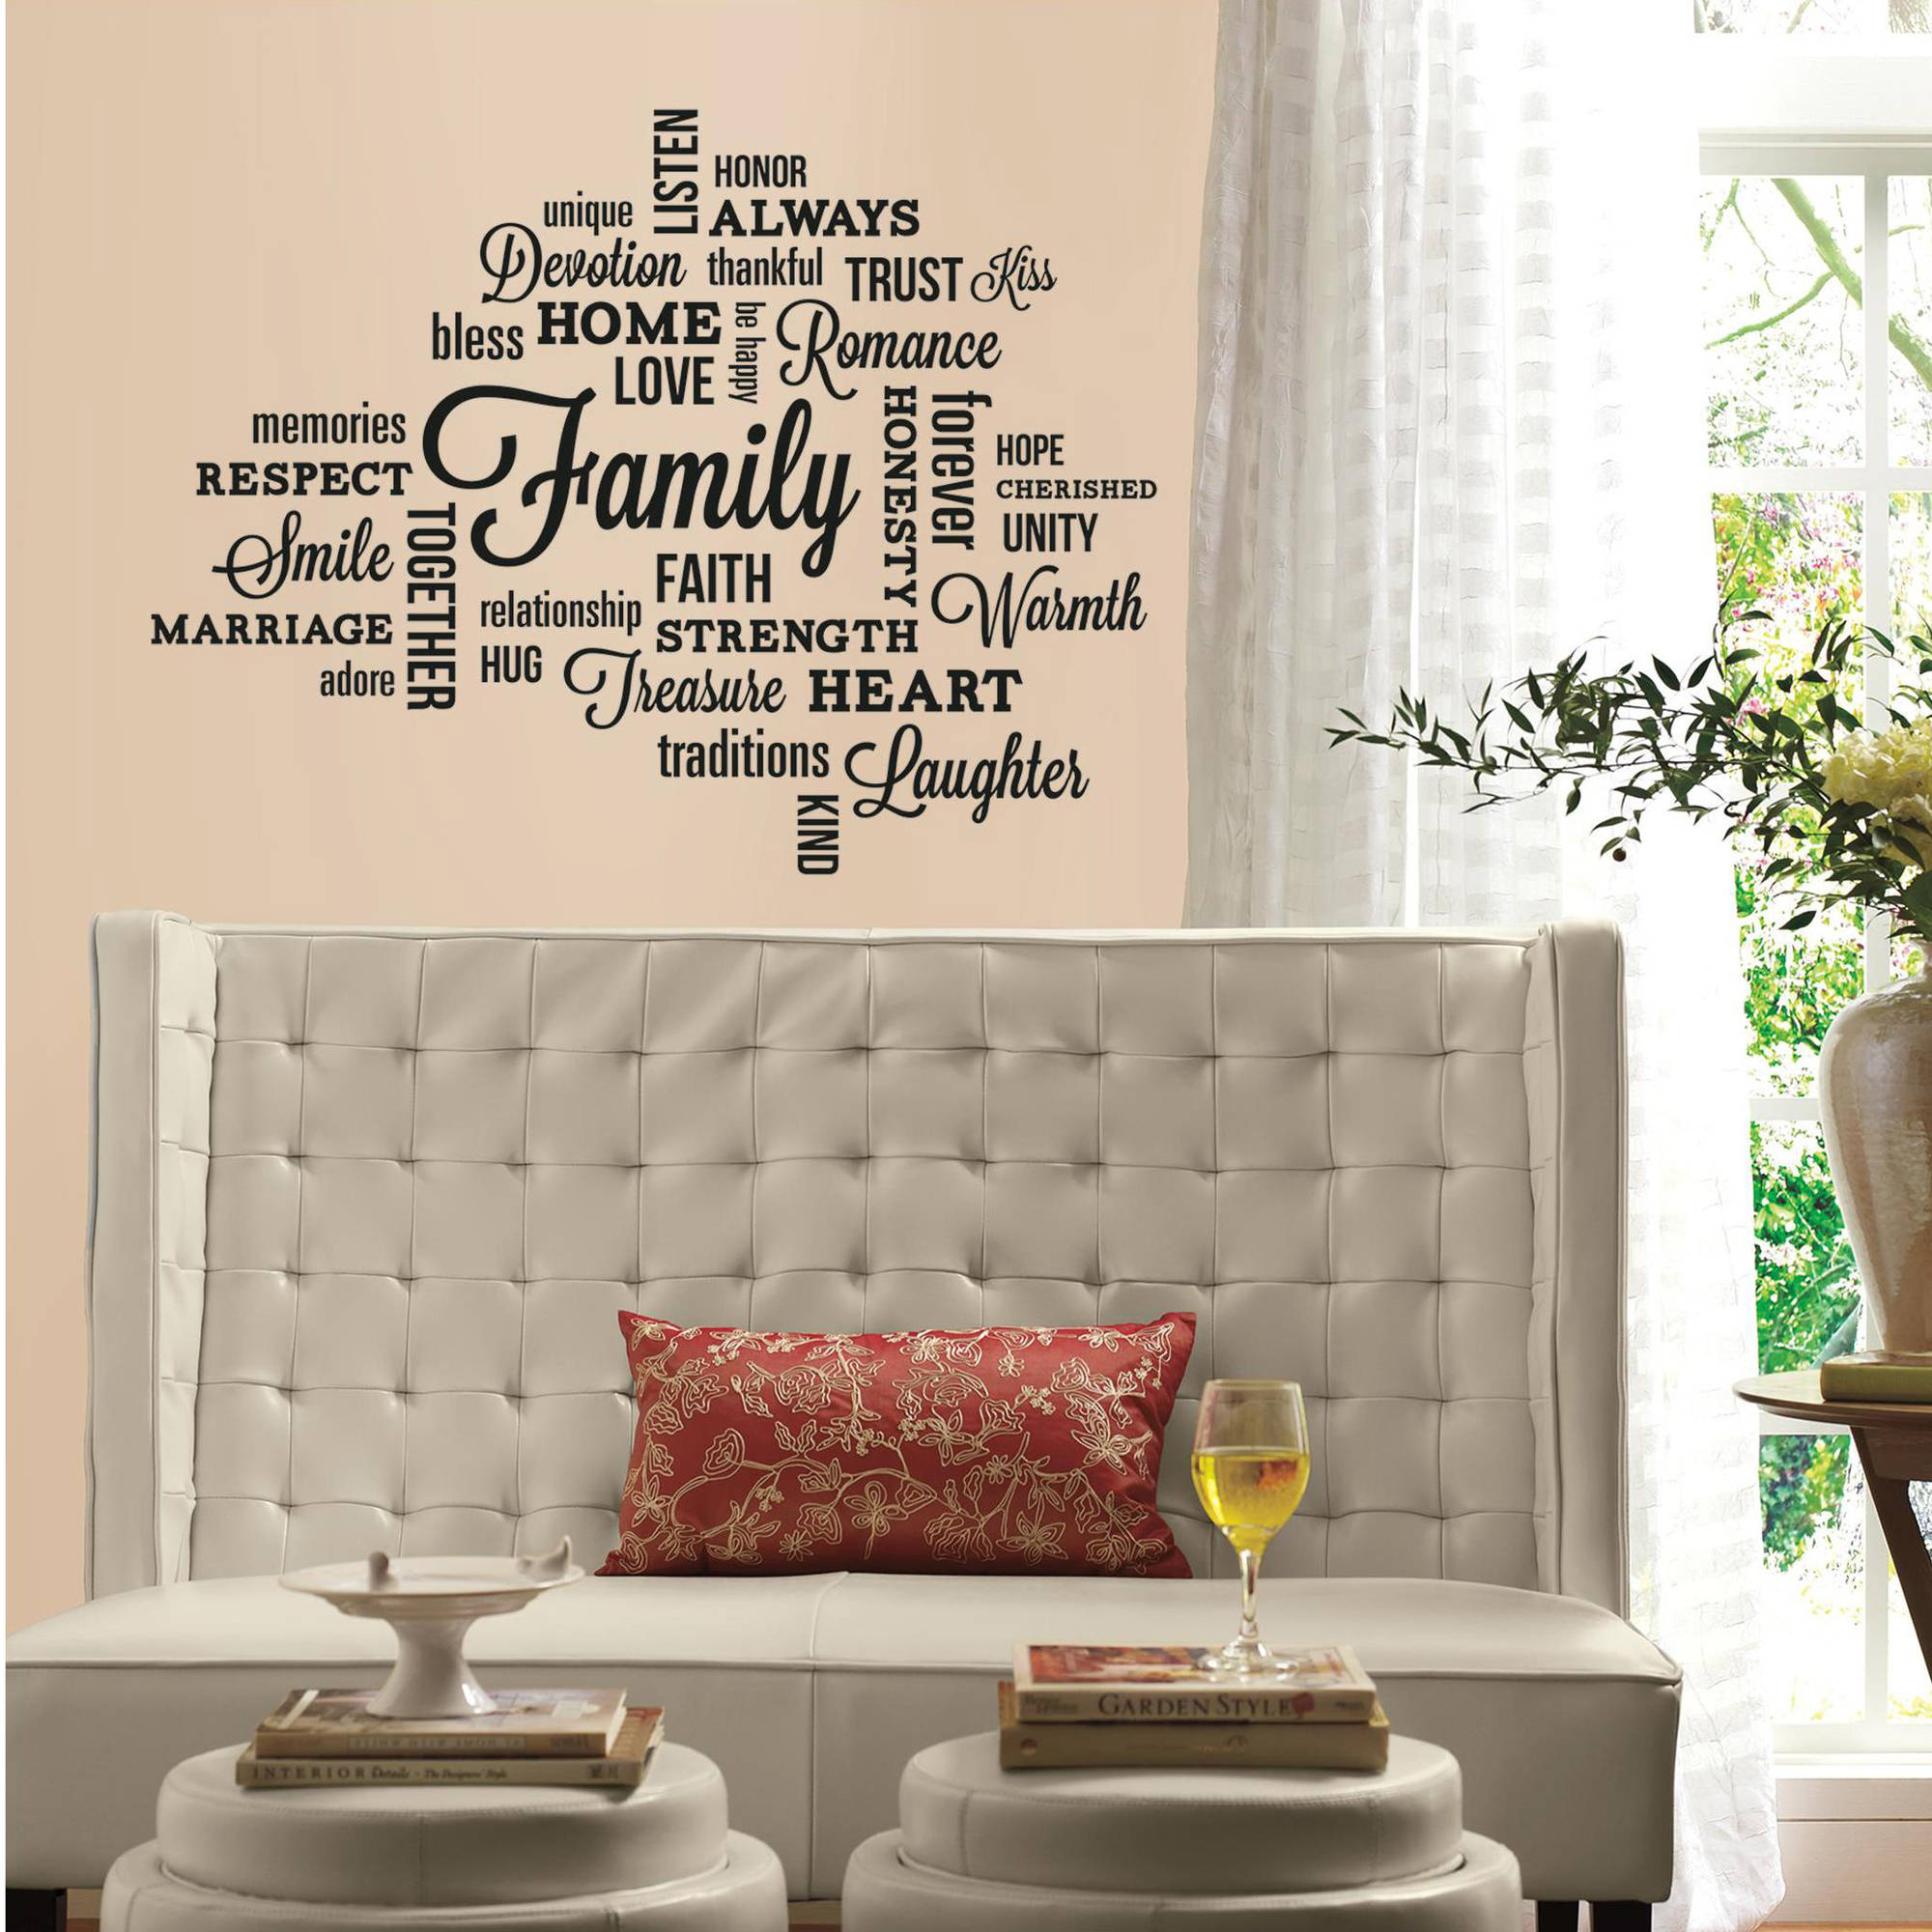 Family quote peel and stick wall decals walmart amipublicfo Gallery